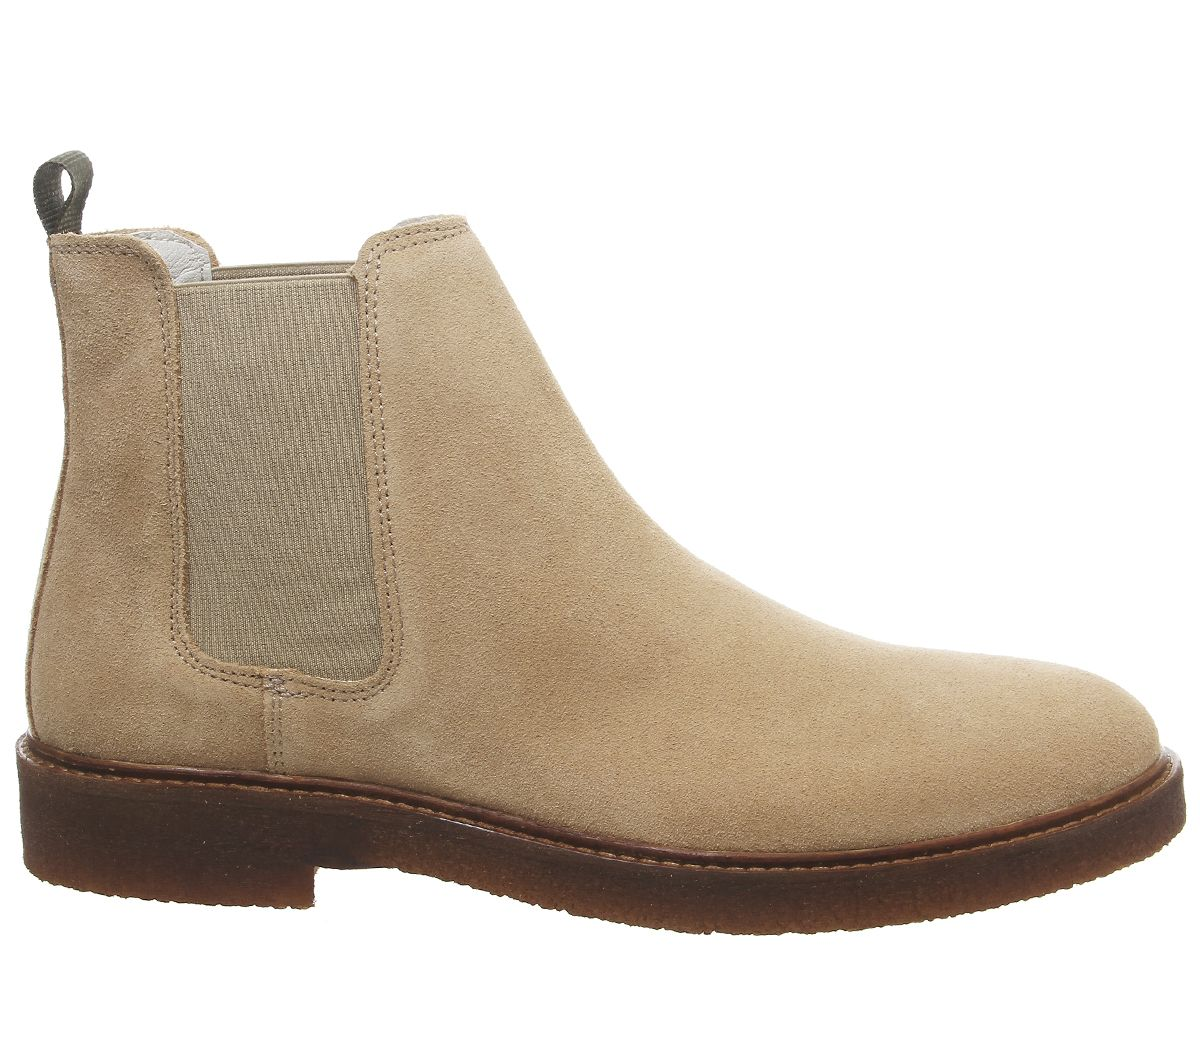 Mens-Office-Locked-Chelsea-Boots-Beige-Suede-Boots thumbnail 4